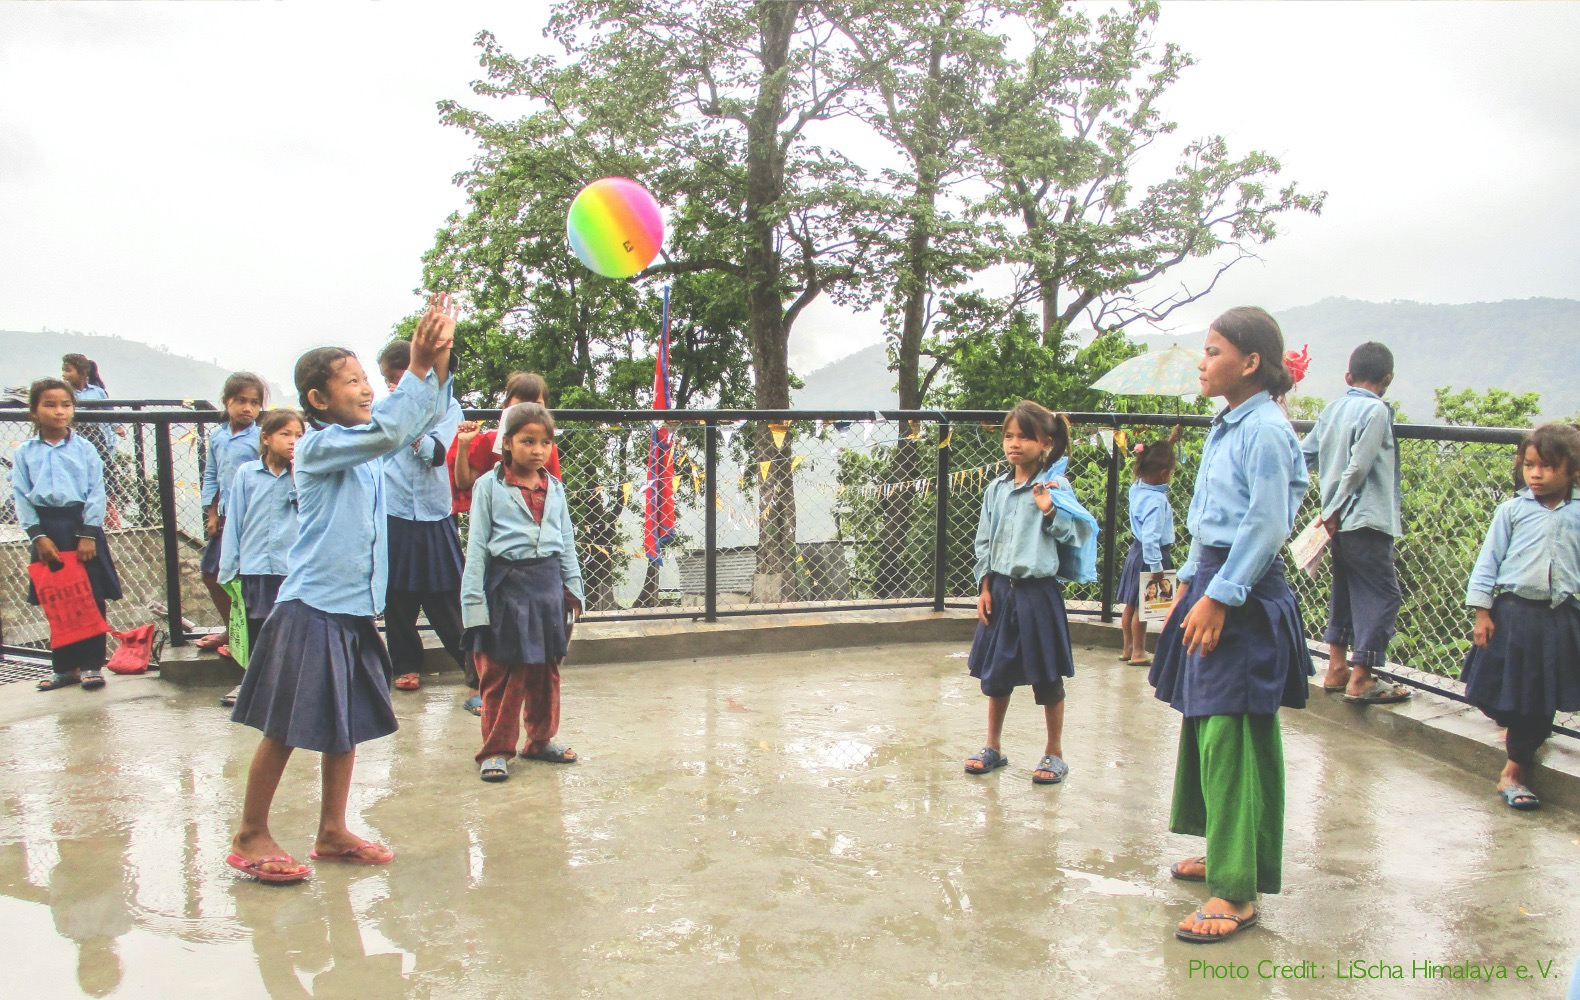 Nepal's school gets roof to play in